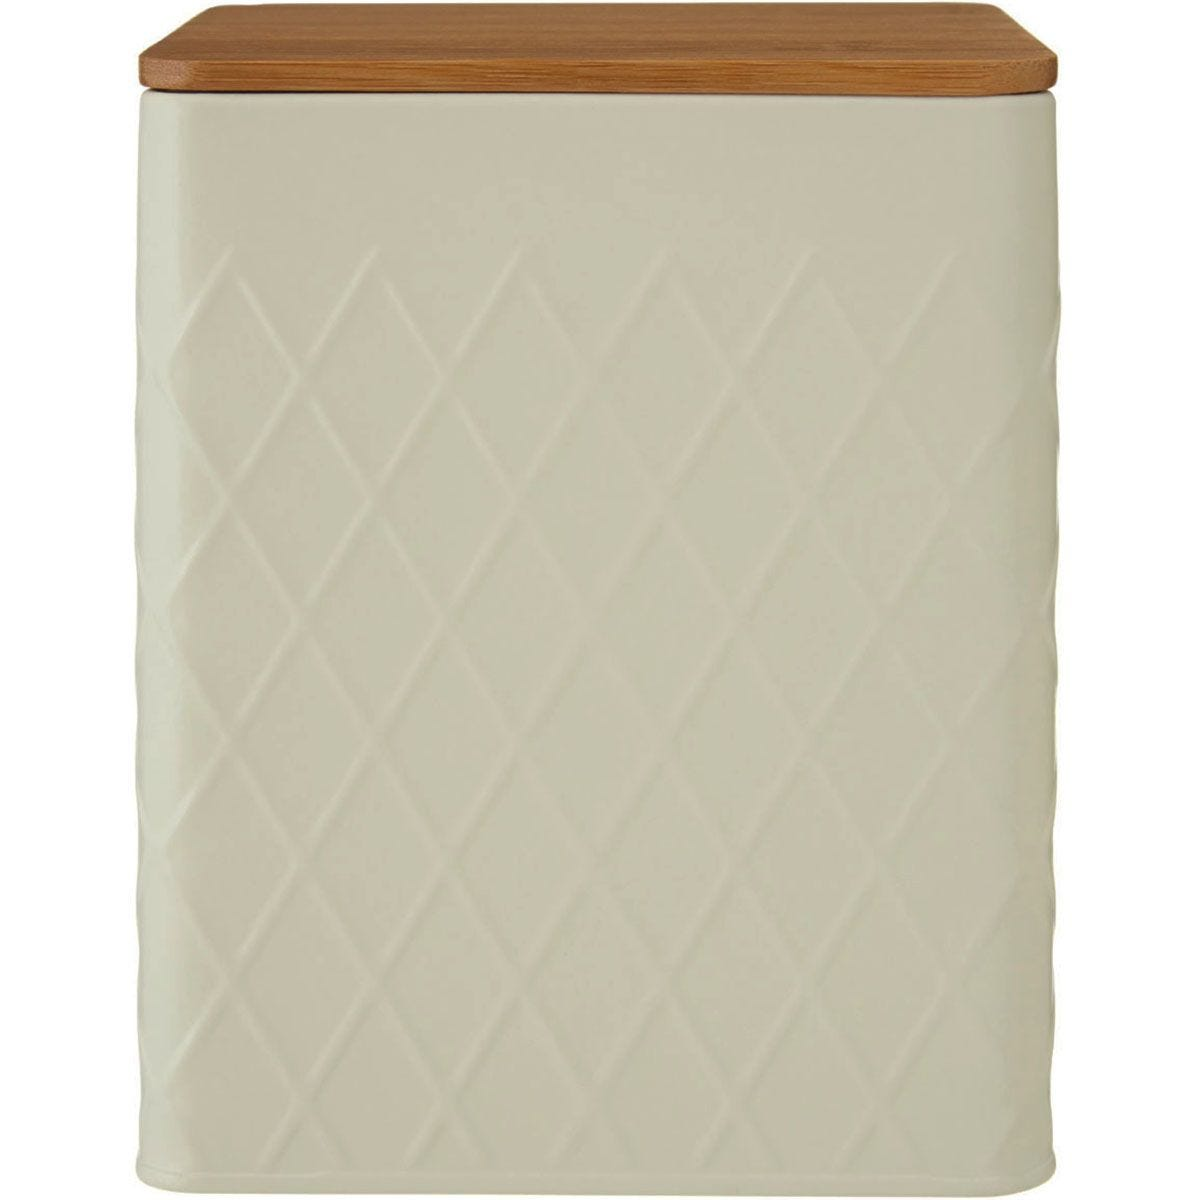 Maison by Premier Rhombus Metal Square Storage Canister - Large